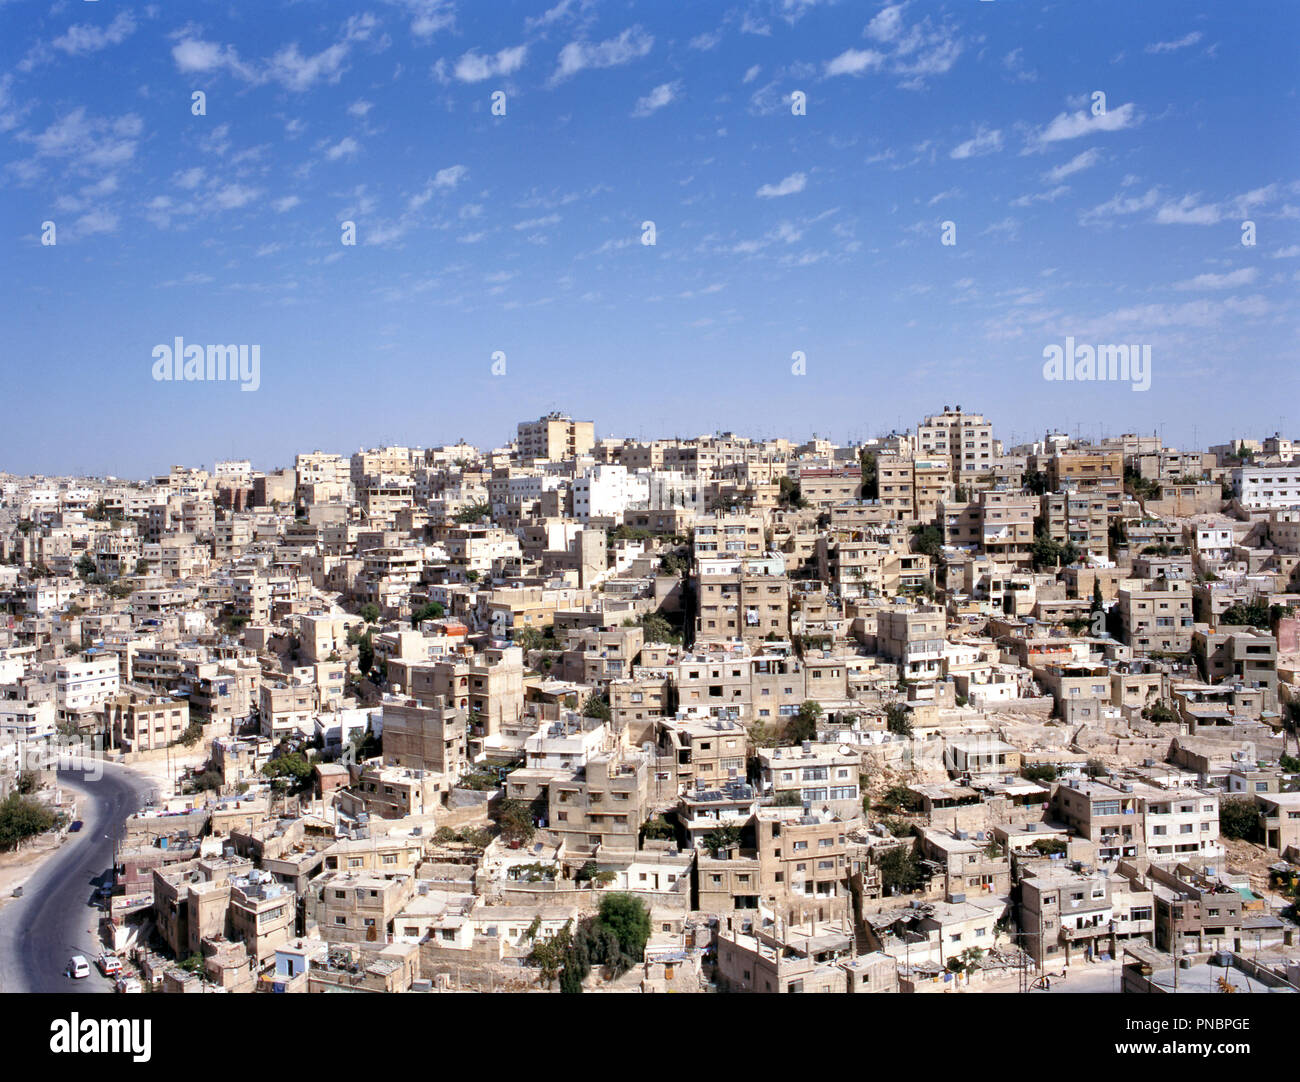 Birdview of Amman the capital of Jordan in the Middle East - Stock Image